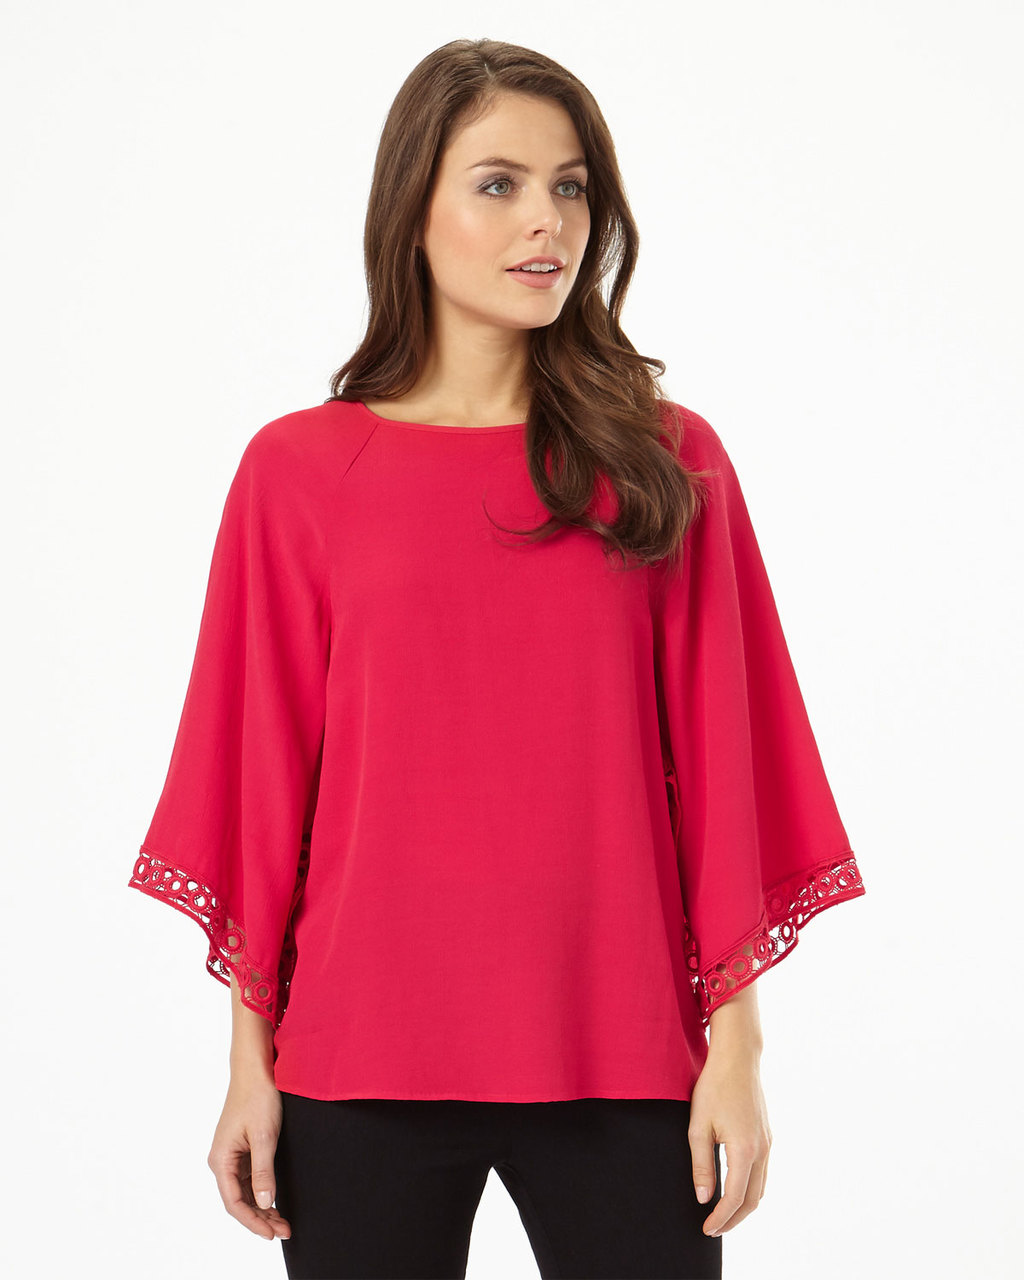 Hena Crochet Sleeve Top - neckline: round neck; pattern: plain; sleeve style: kimono; predominant colour: true red; occasions: casual, evening, creative work; length: standard; style: top; fibres: cotton - mix; fit: loose; sleeve length: 3/4 length; texture group: sheer fabrics/chiffon/organza etc.; pattern type: fabric; season: s/s 2016